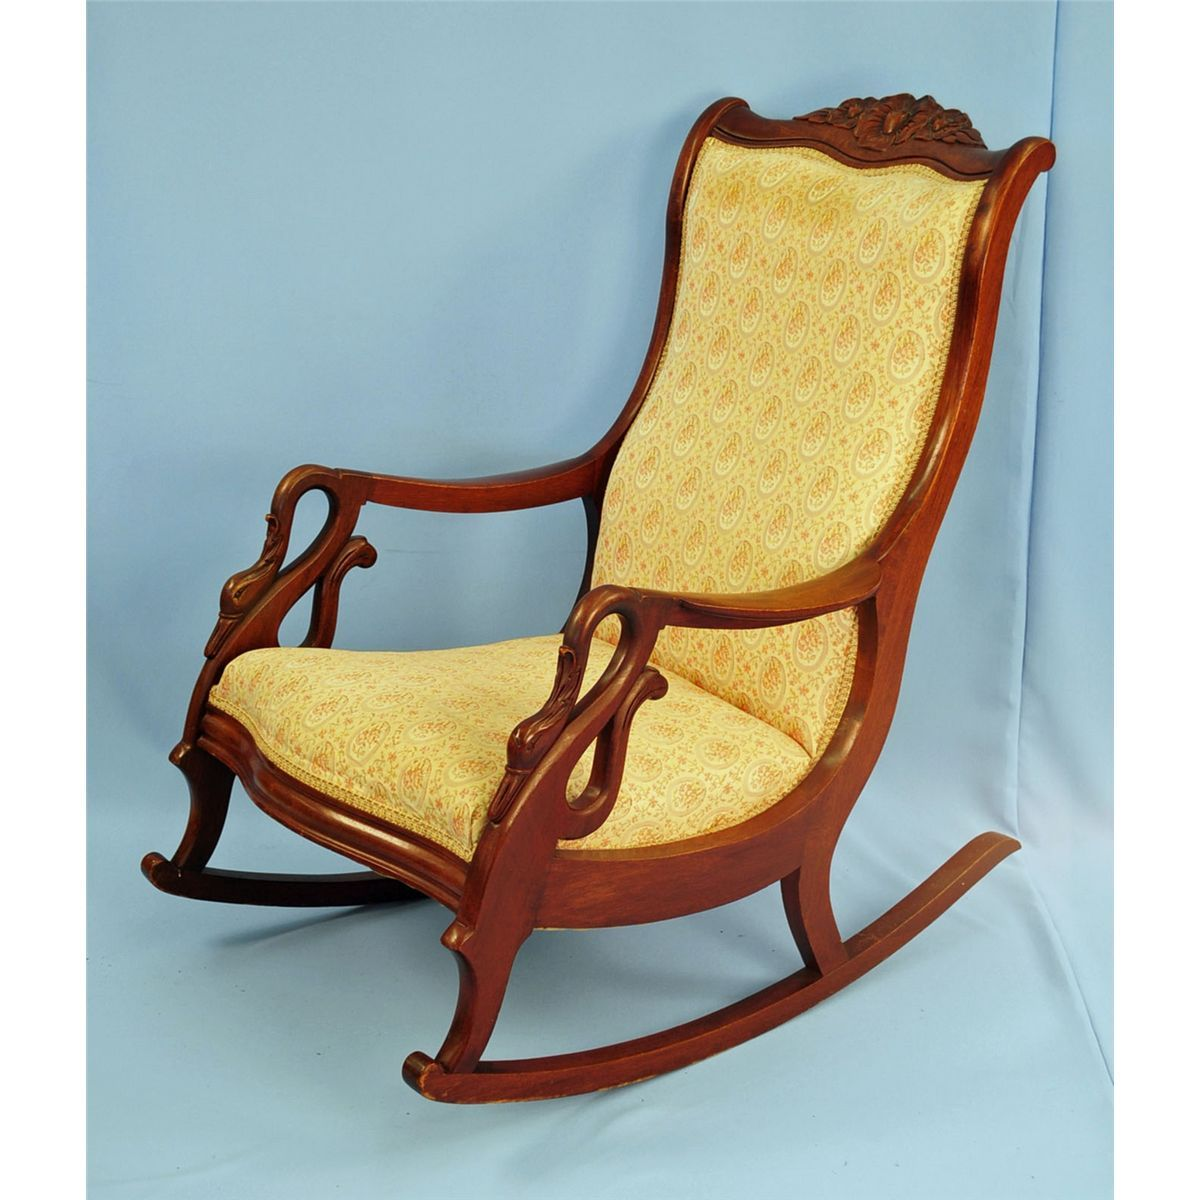 Google Chair Goose Neck Rocking Chair Google Search Rocking Chairs